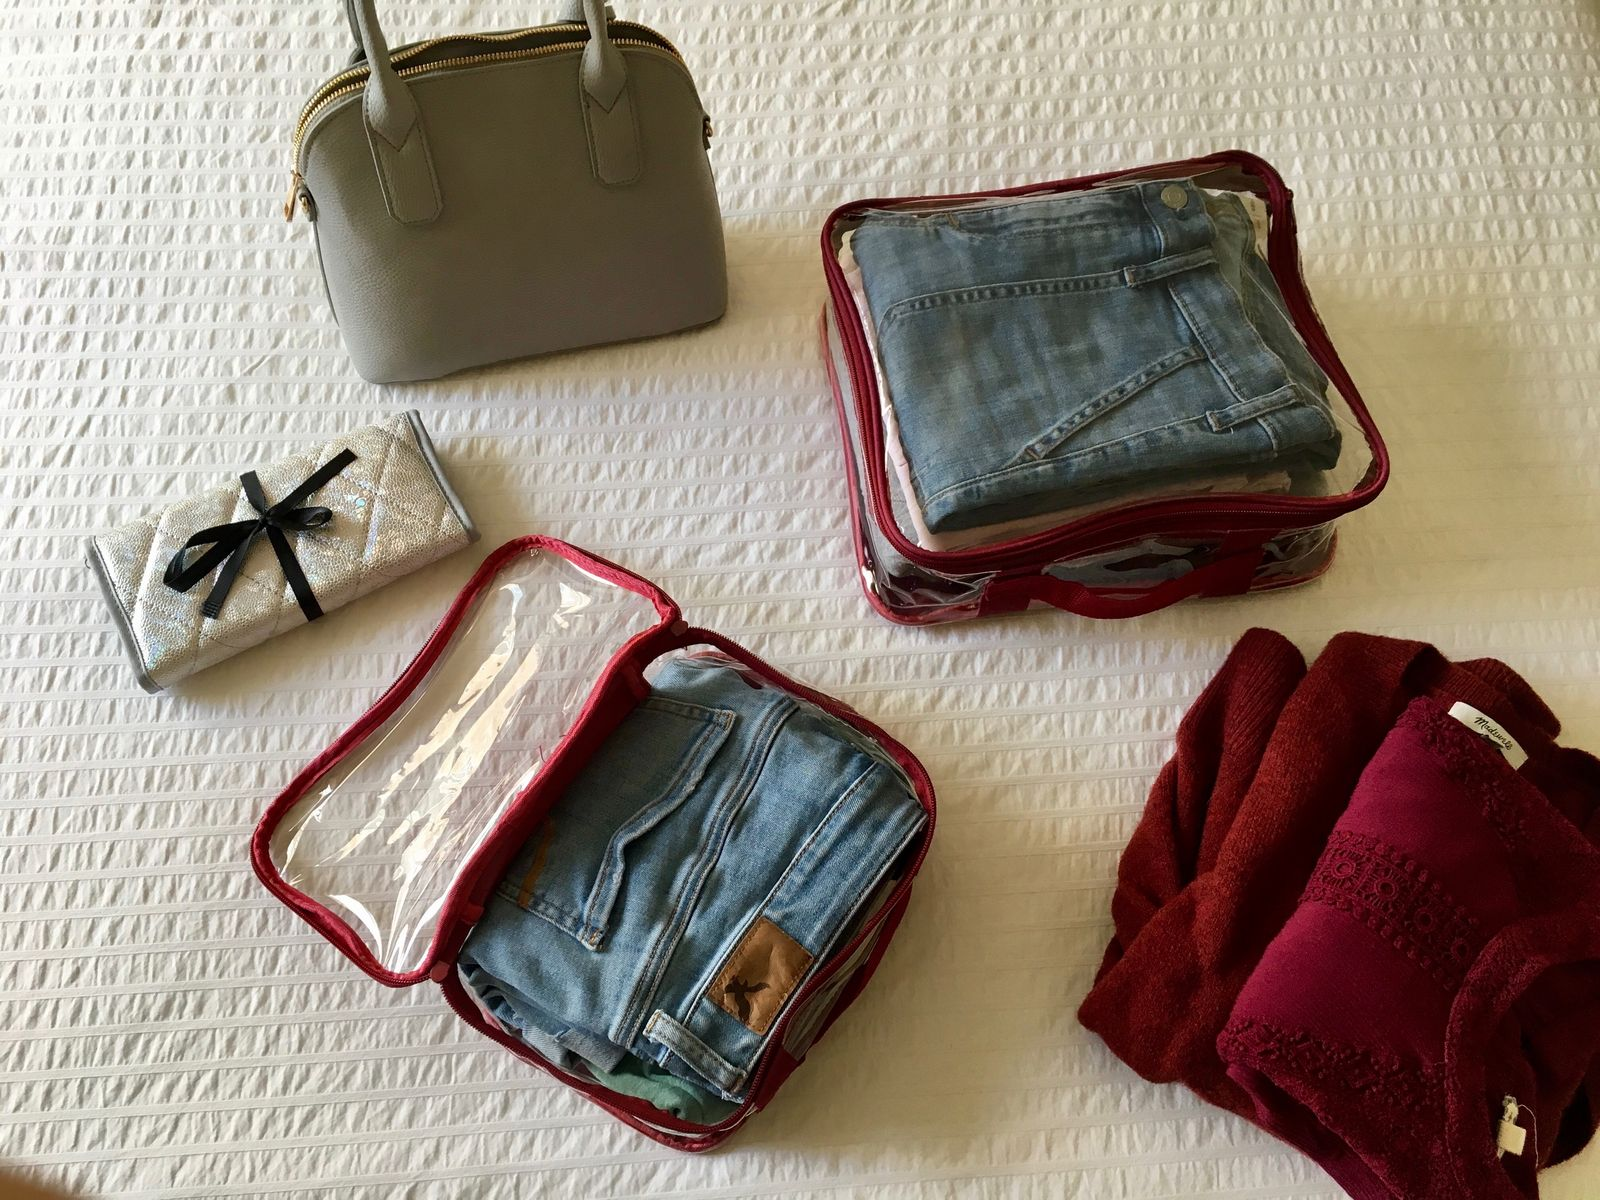 Folded jeans and shirts packed in clear packing cubes